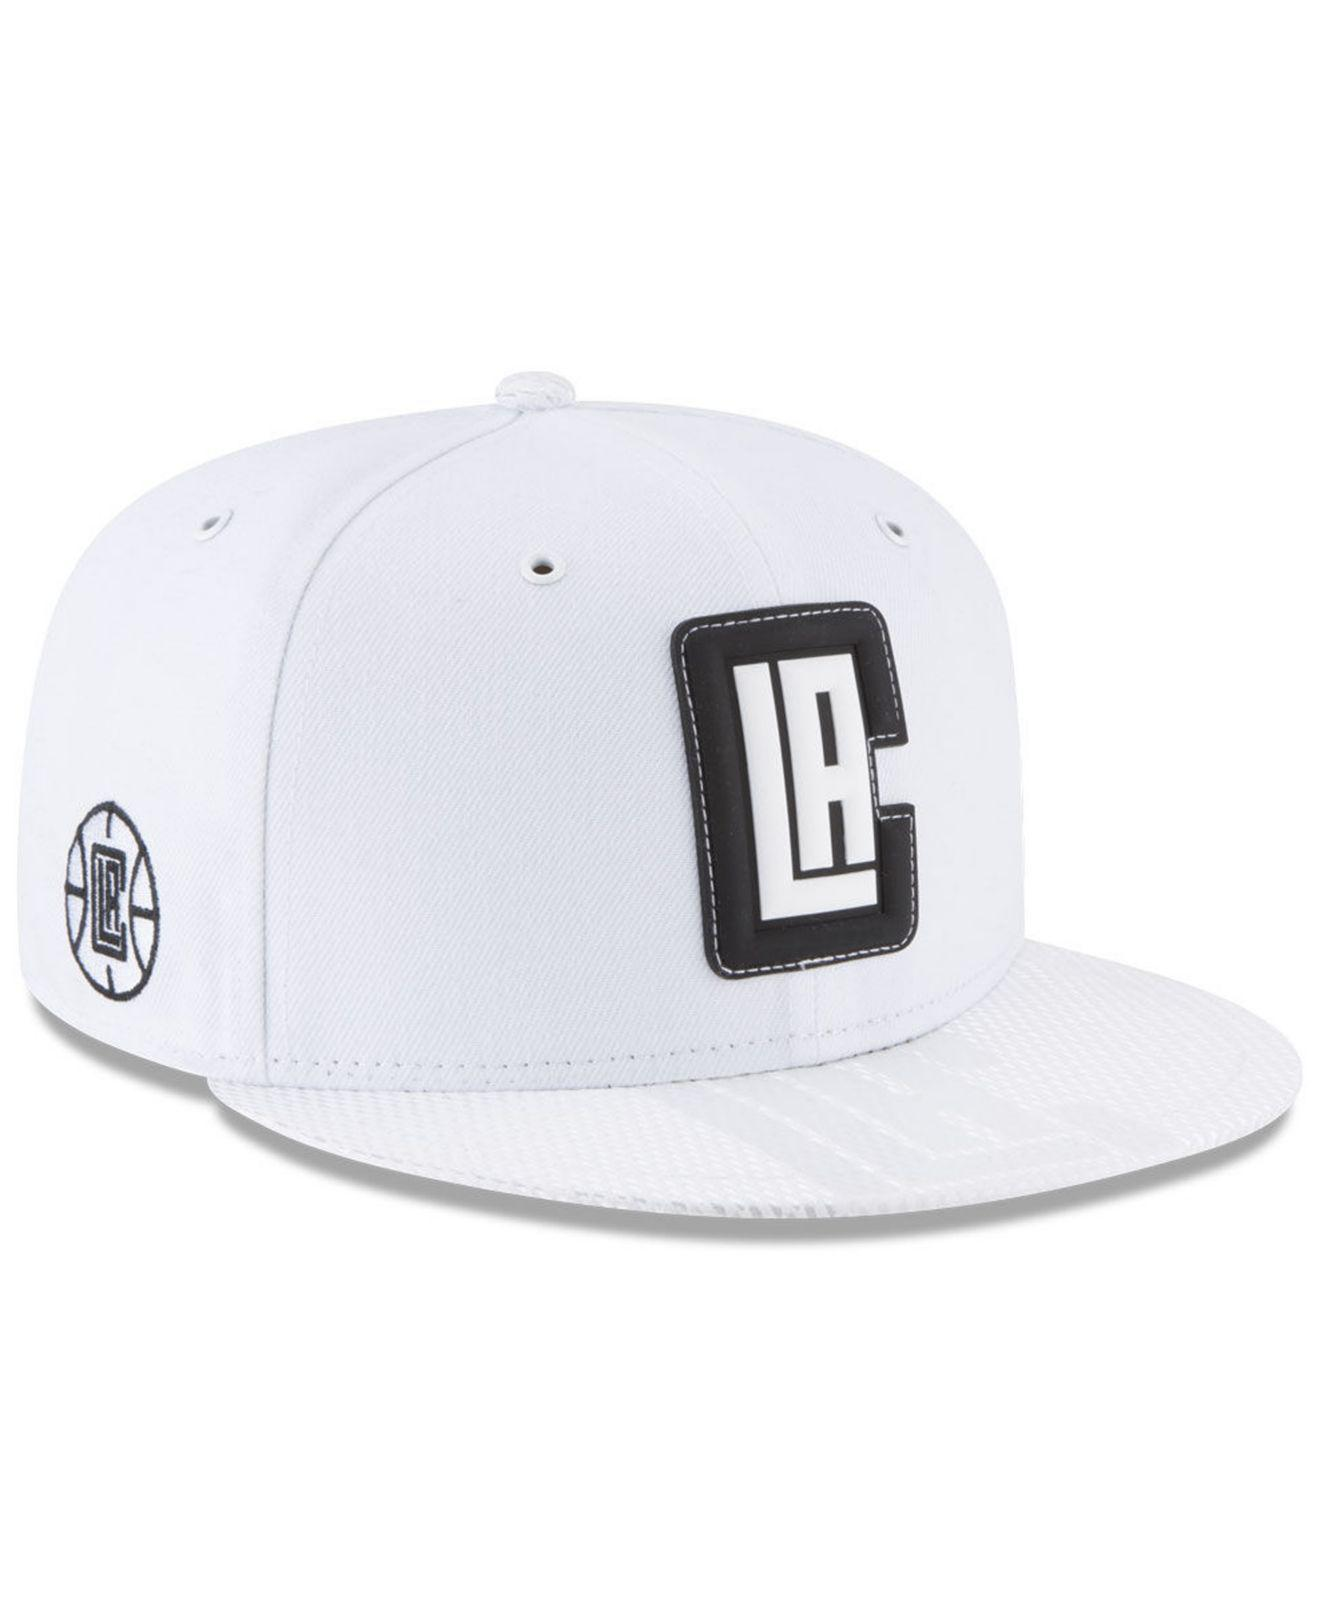 00ad3c80372ae KTZ. Men s White Los Angeles Clippers Back 1 2 Series 9fifty Snapback Cap